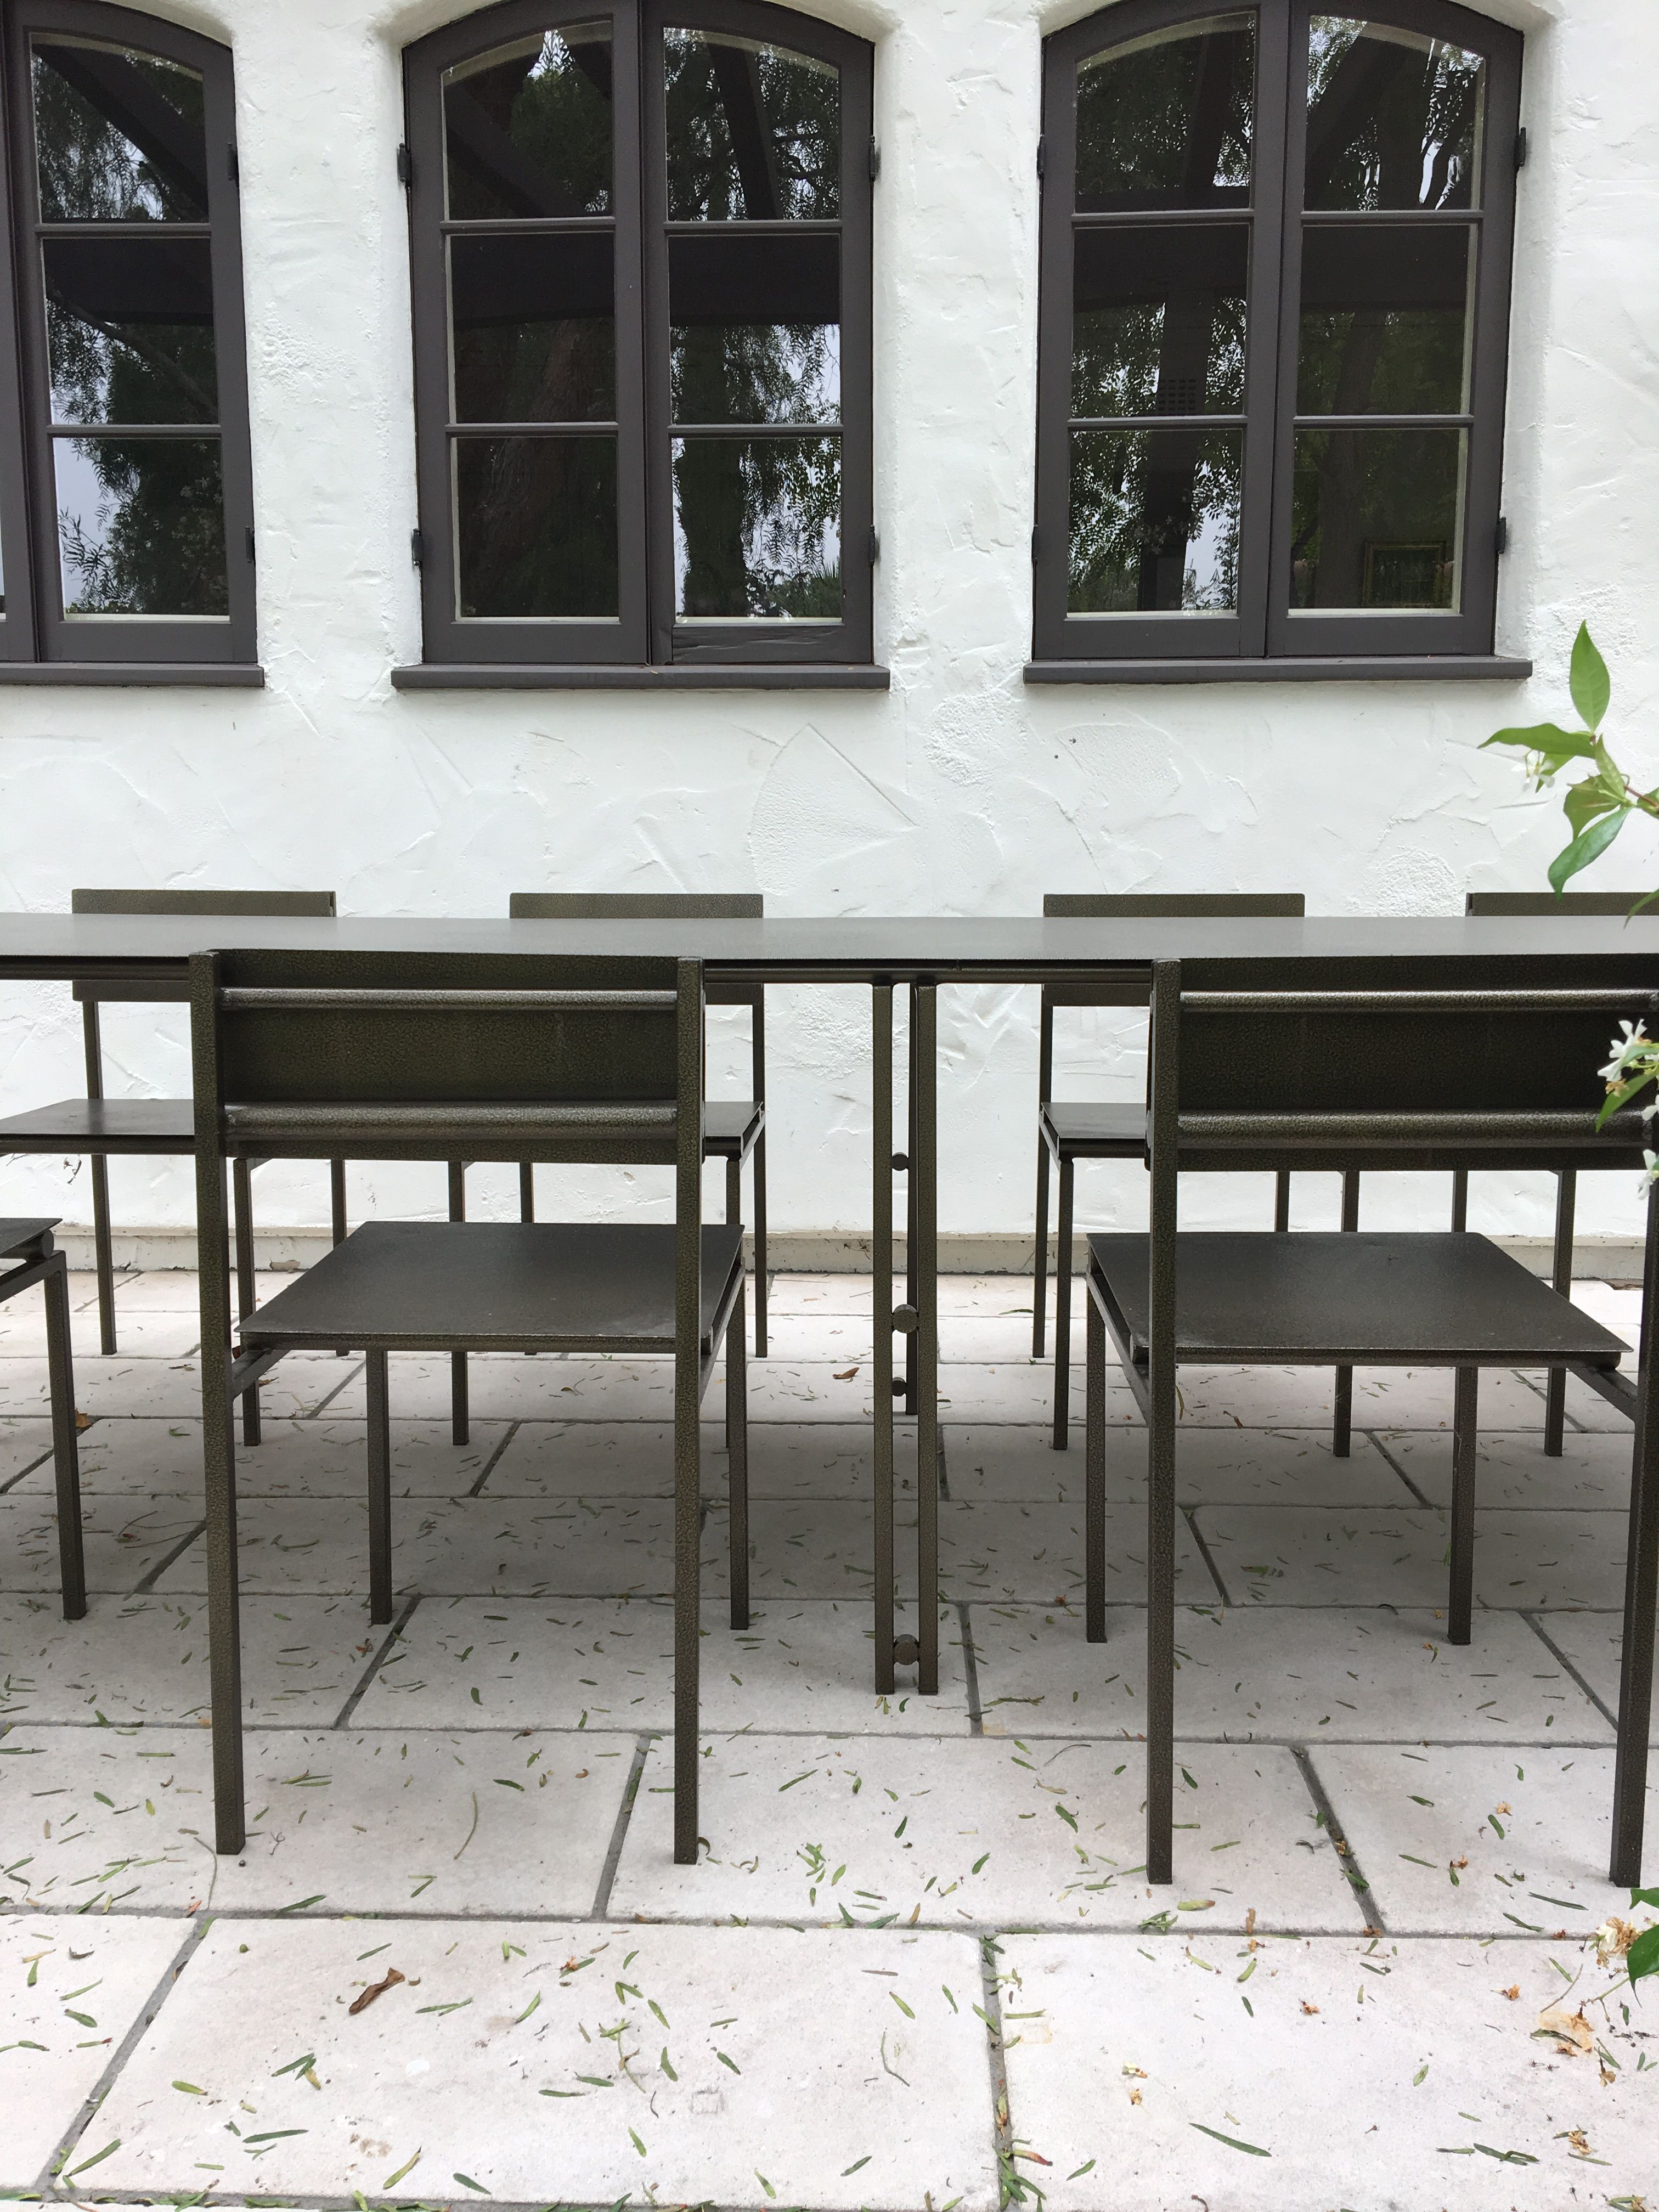 Suspension Metal Dining Table - Large Size product image 6